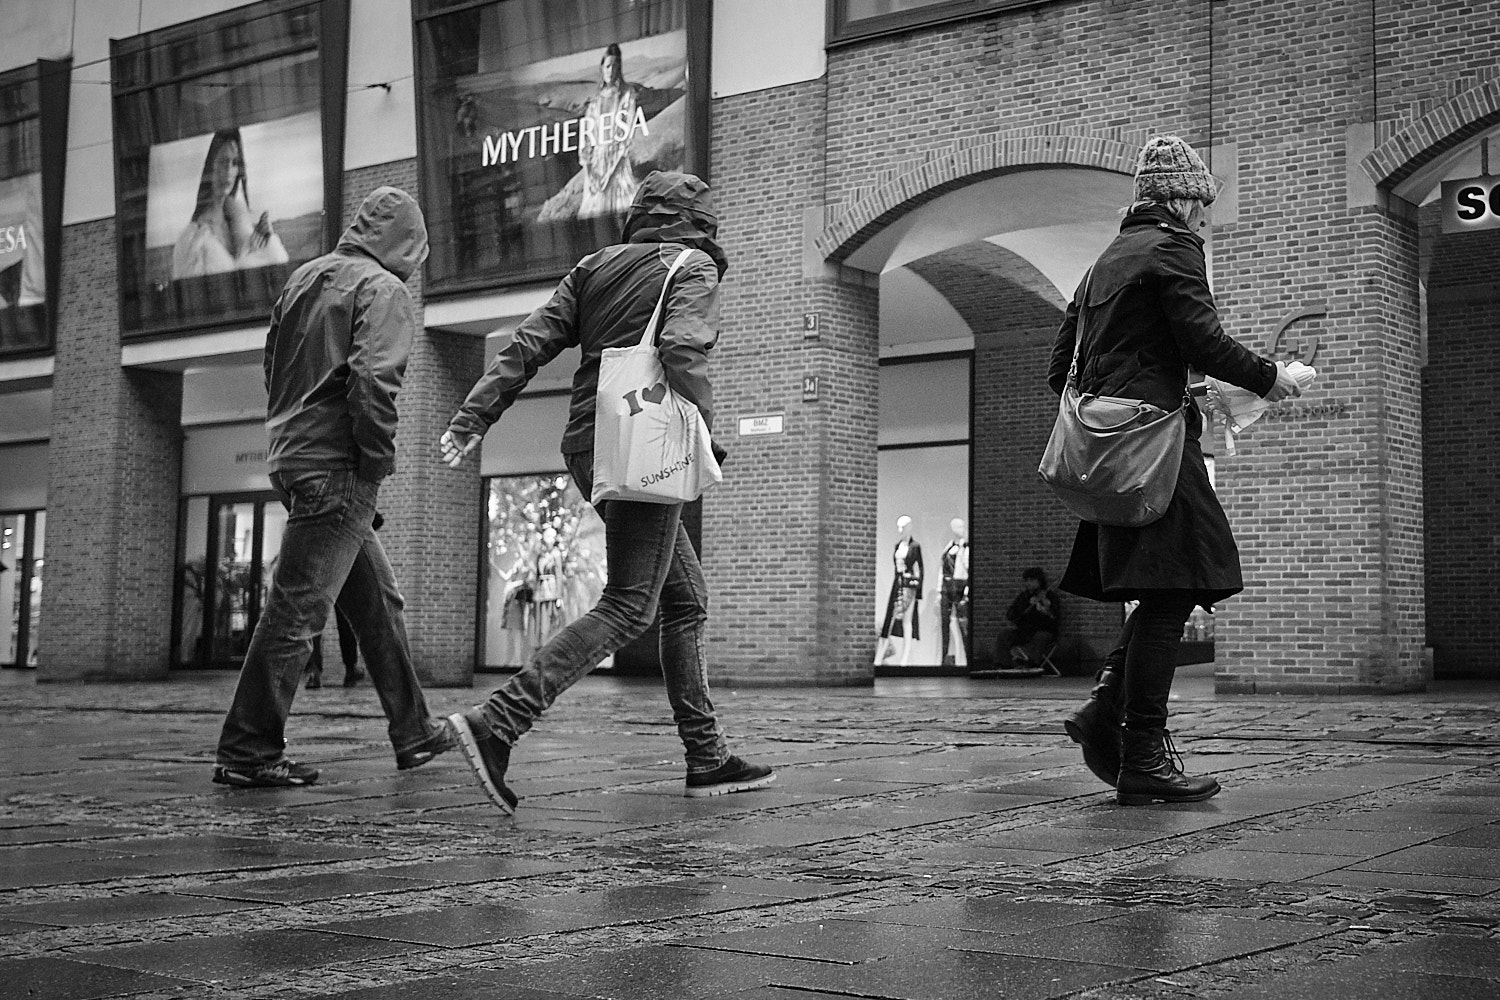 Bypassers going about their business in the Maffeistrasse, Munich, Germany